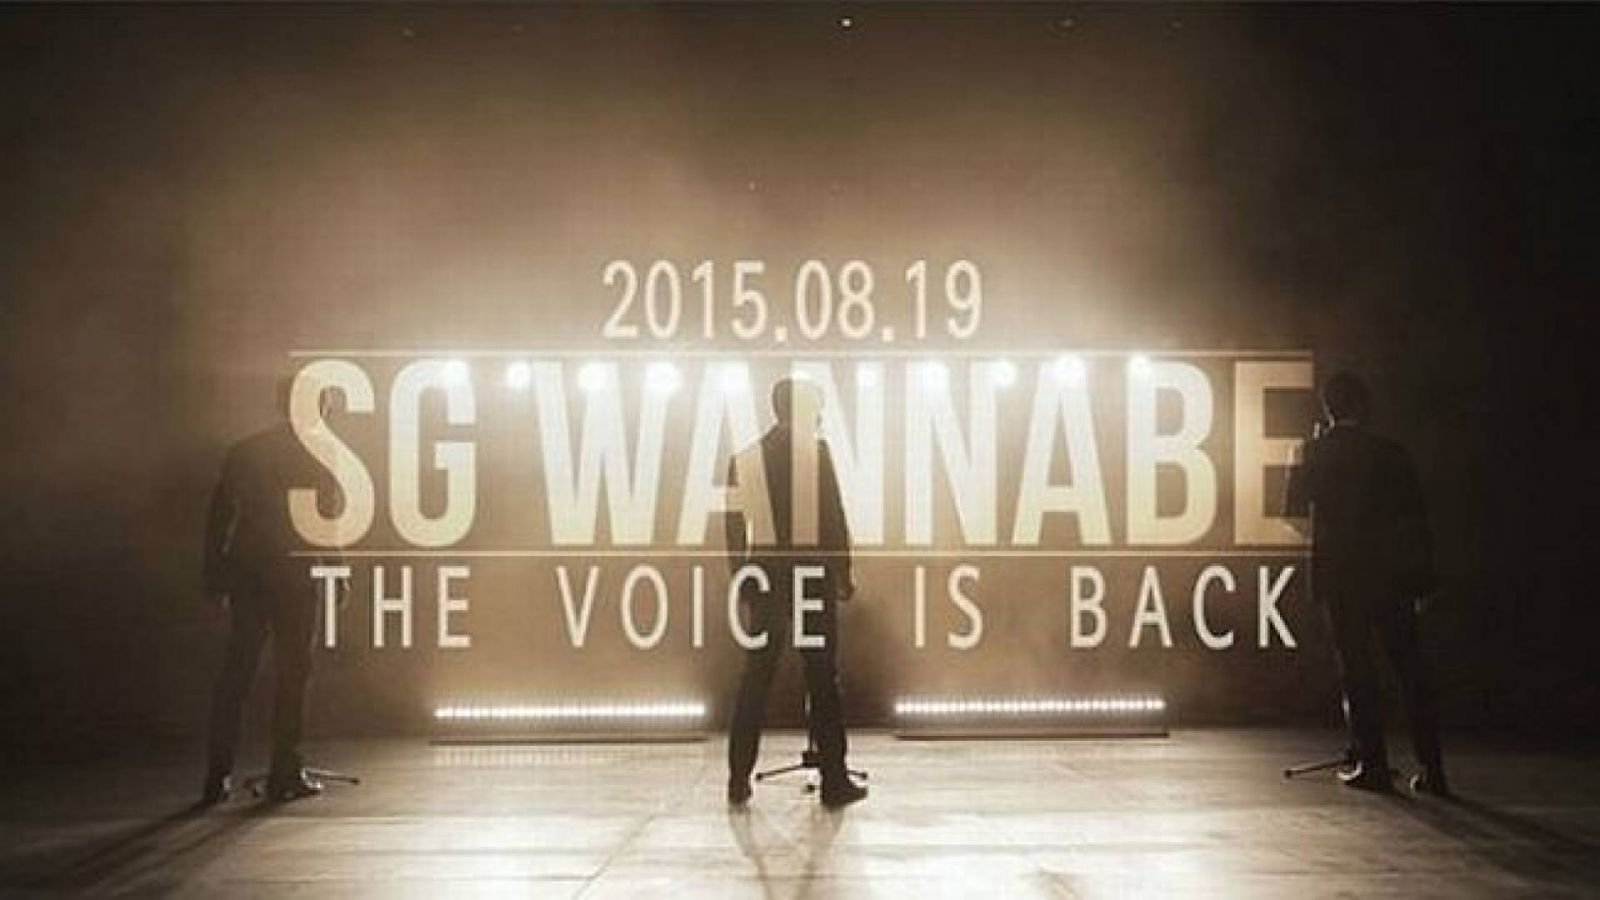 Confirmado o comeback do SG Wannabe! © SG Wannabe Official Facebook Page